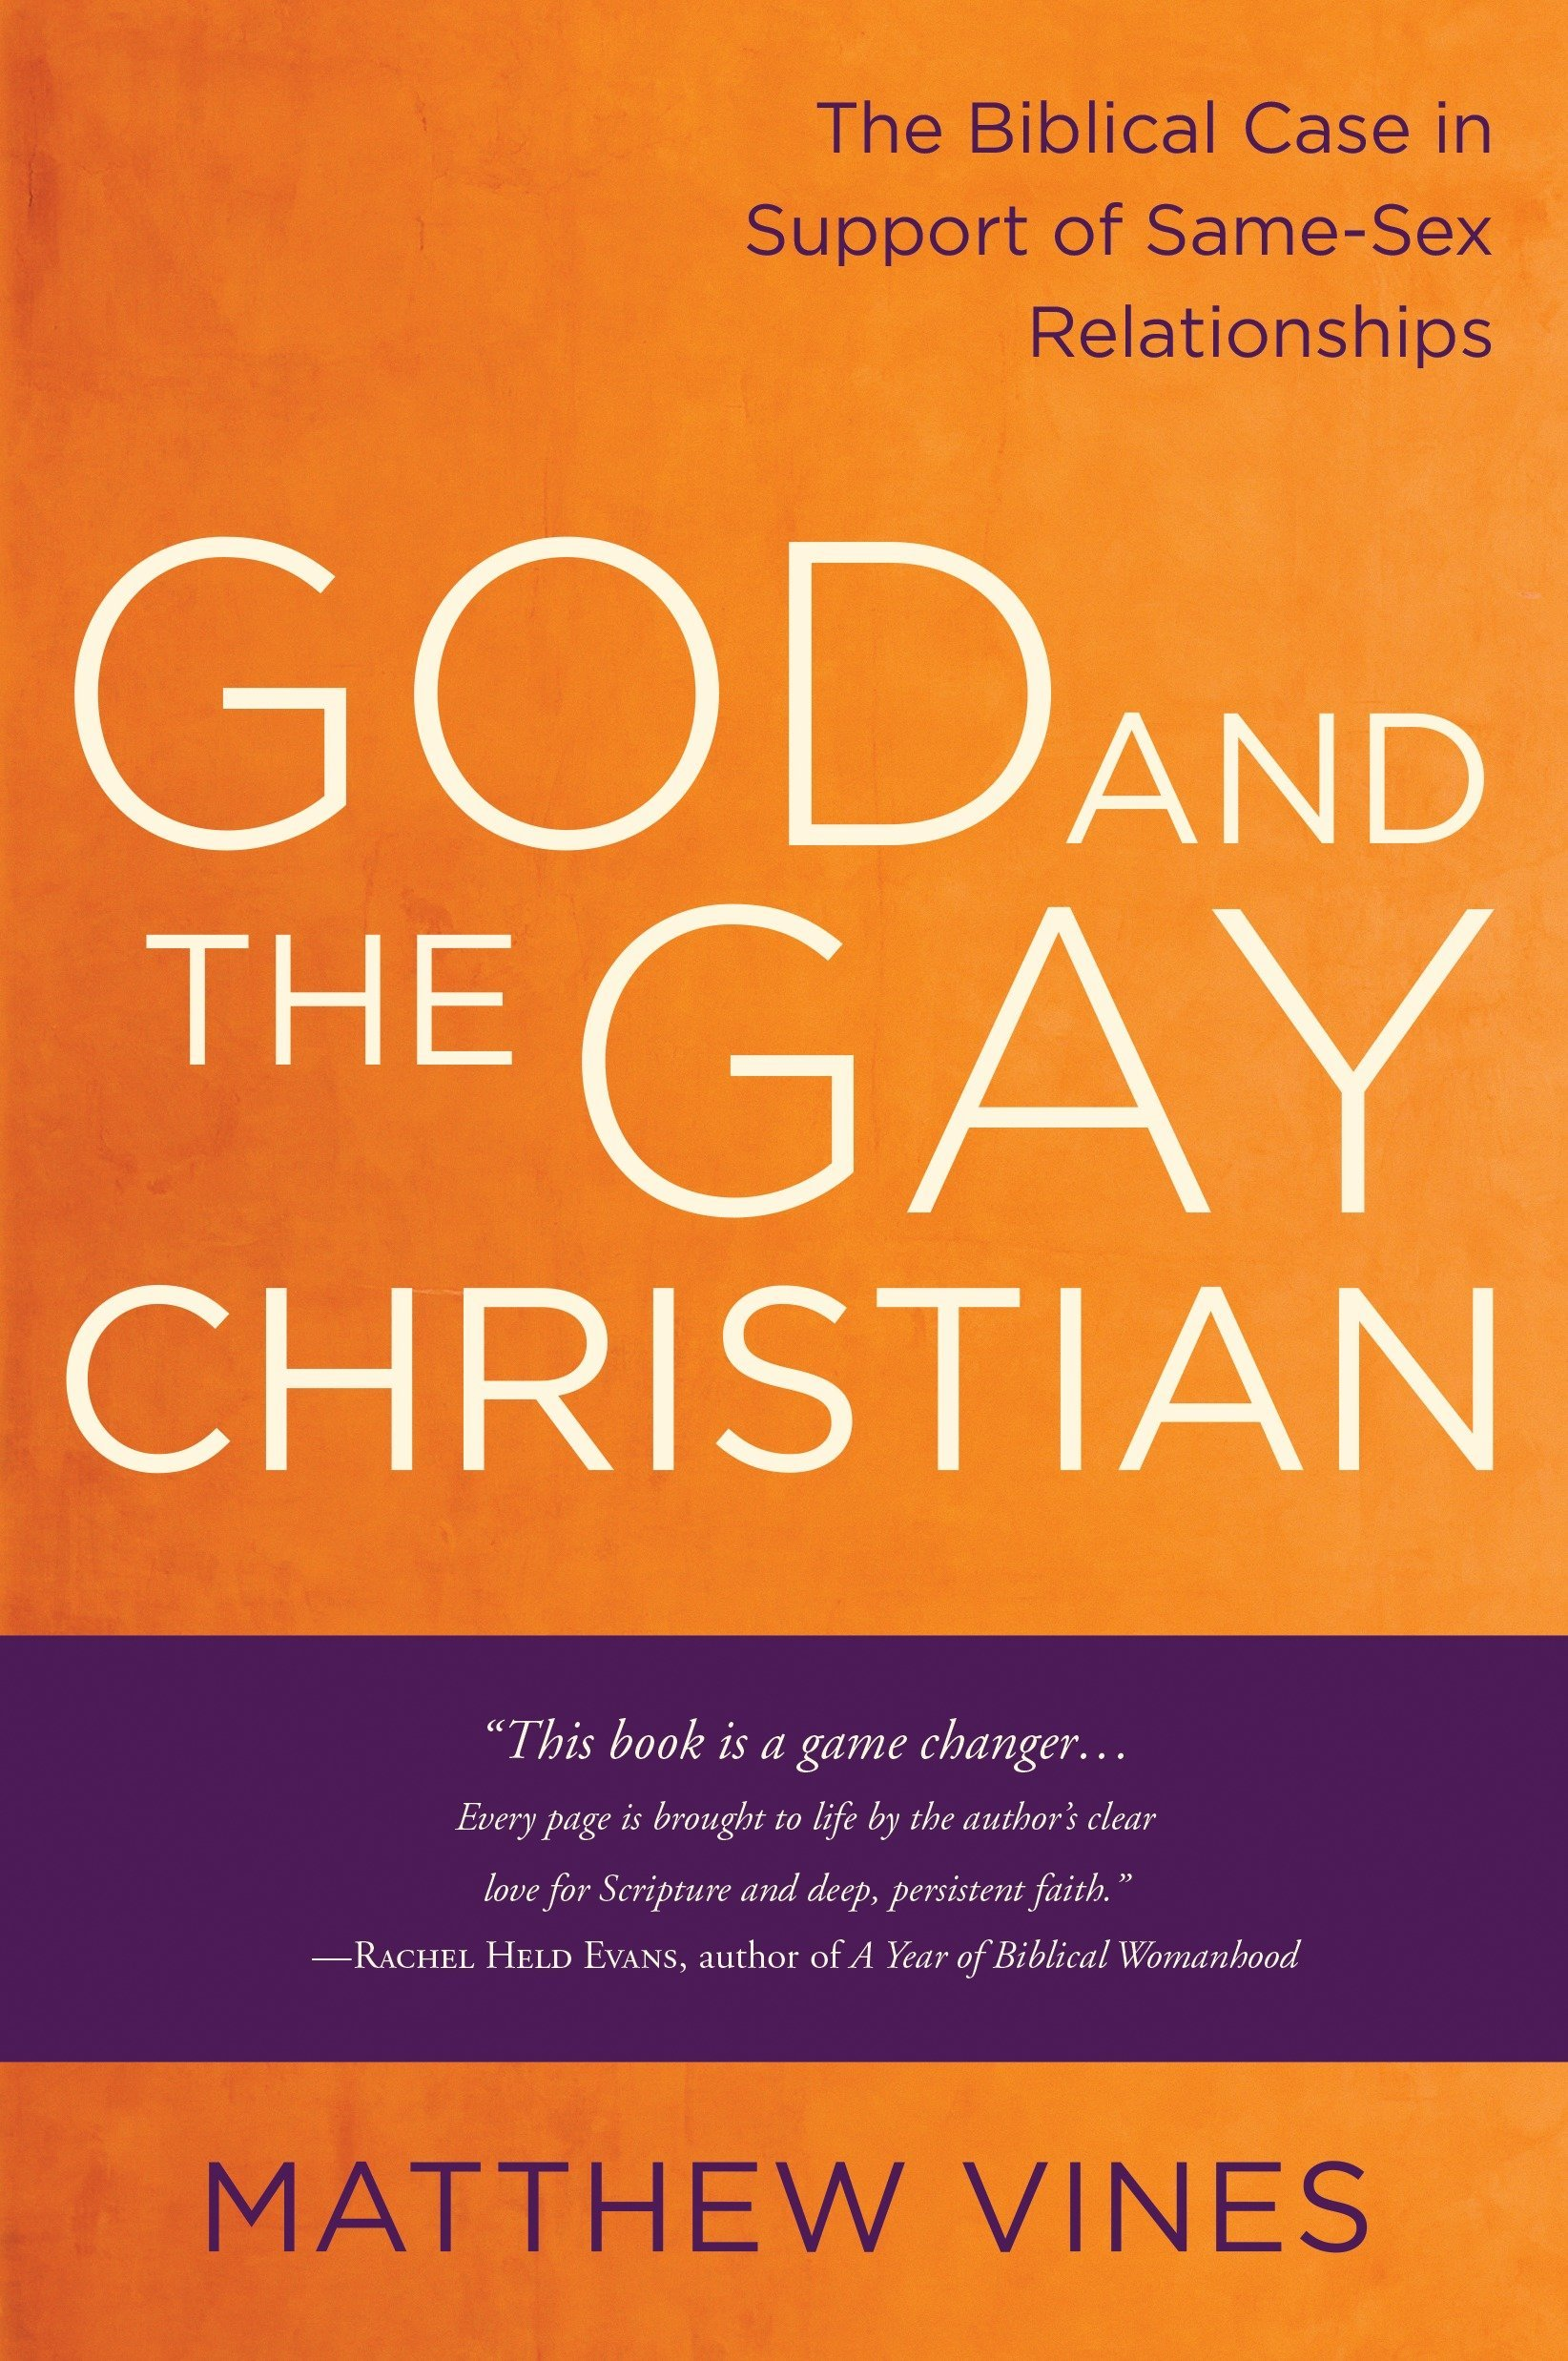 Homosexuality and christianity reconciled in christ